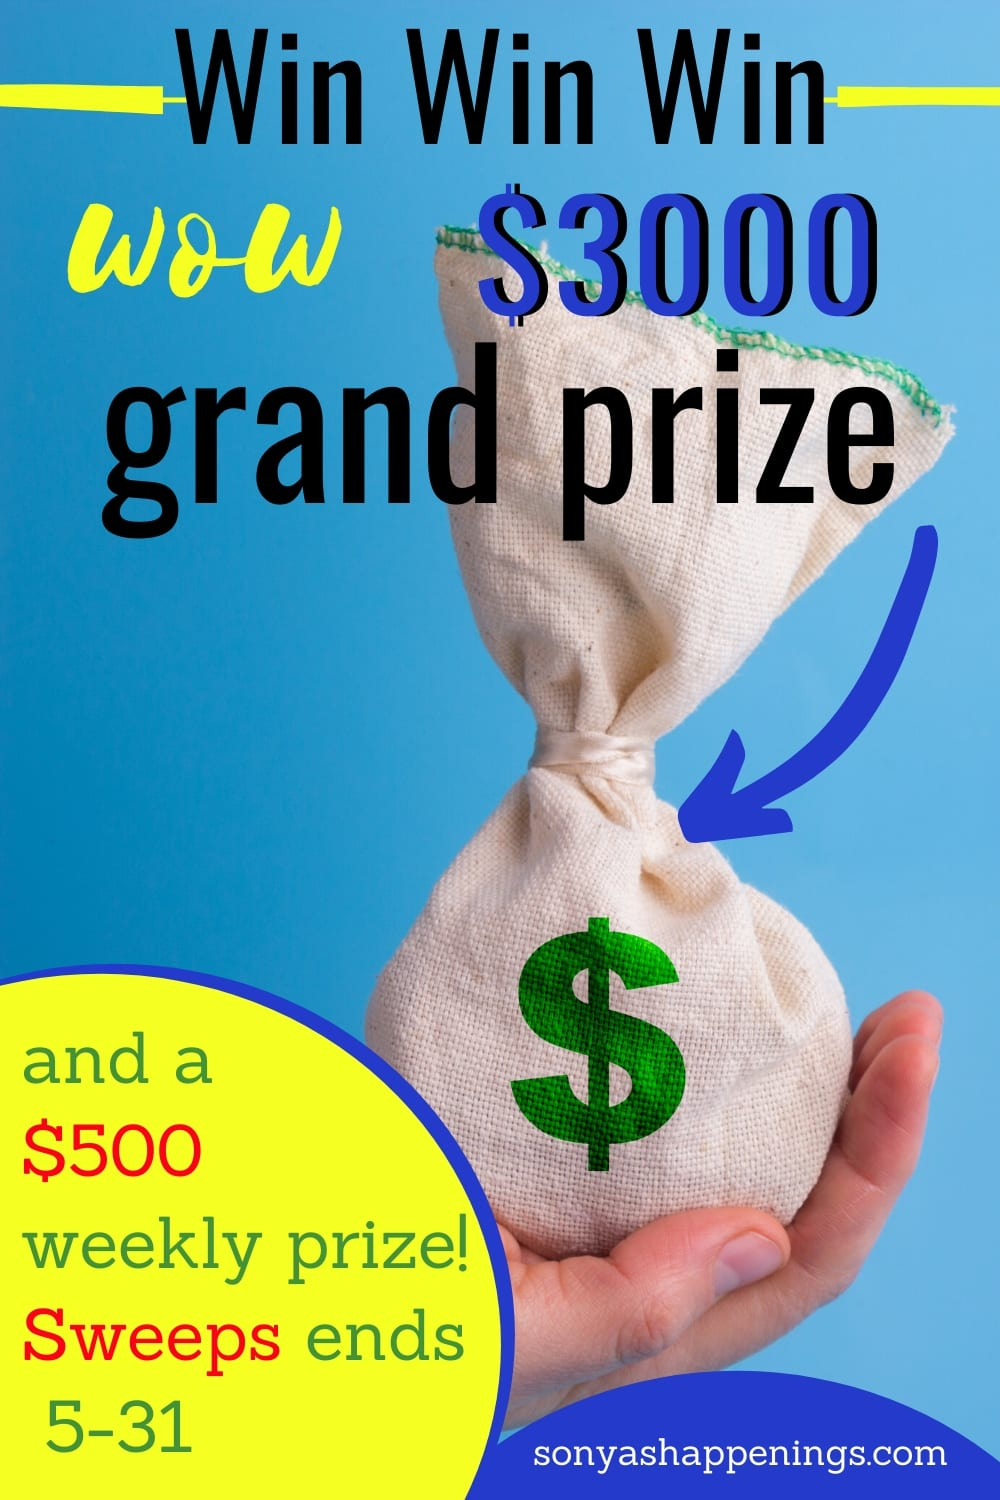 Enter to win $500 or $3000 cash ~ sweeps ends 5-31